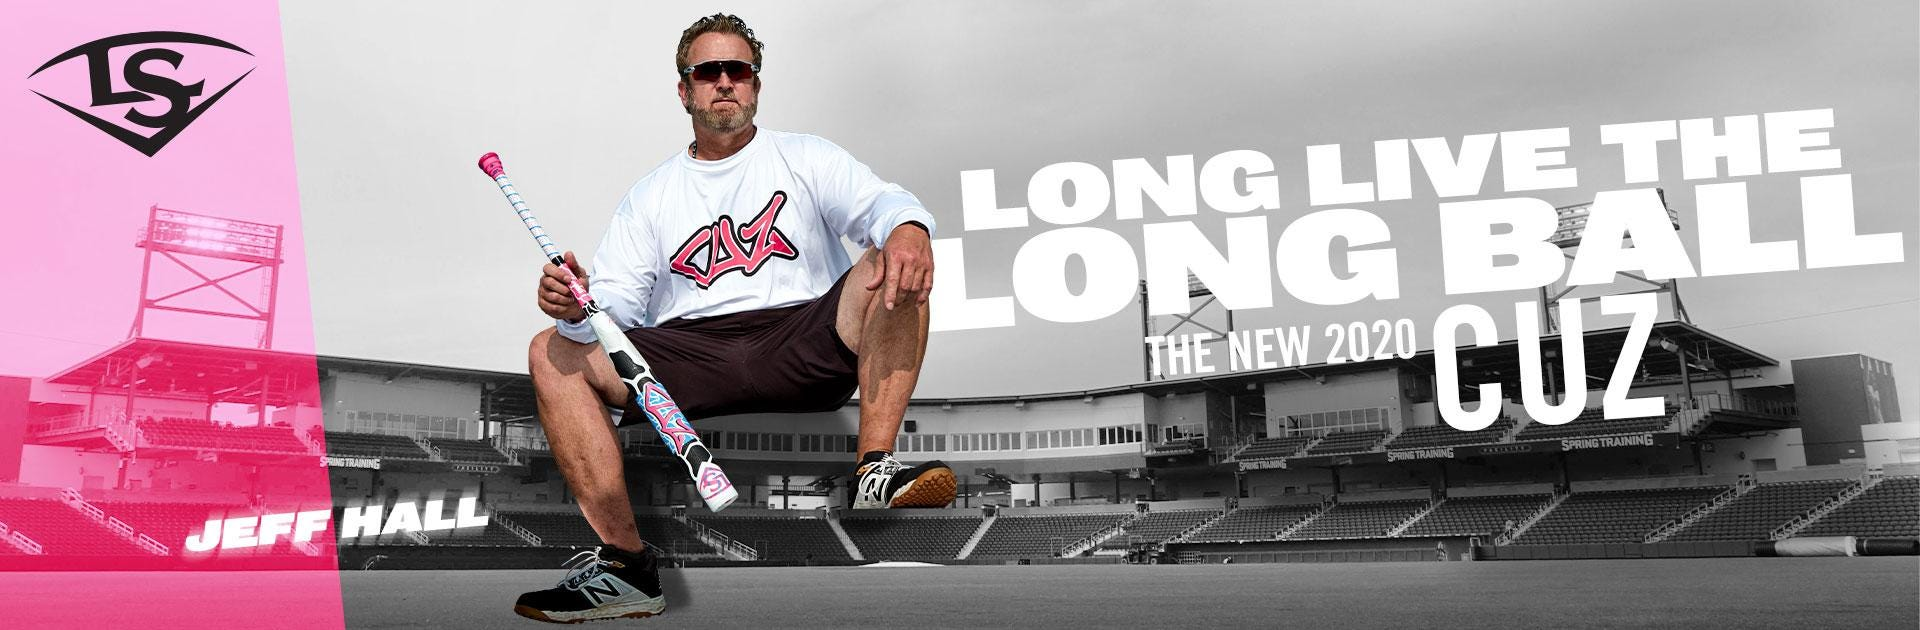 Long Live the Long Ball. The new 2020 CUZ Slowpitch softball bat.